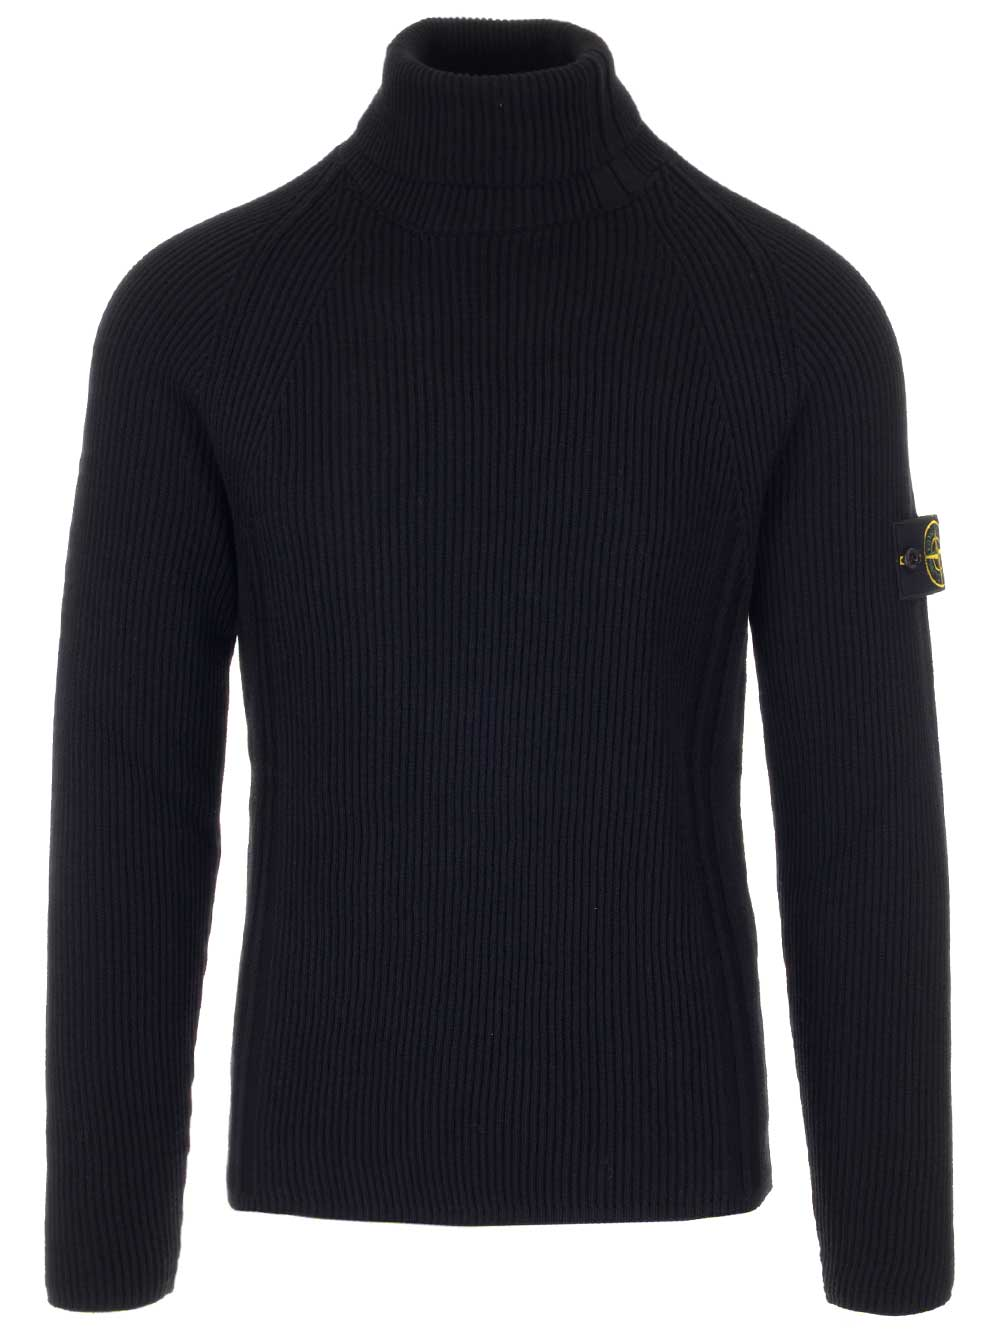 Stone Island Tops STONE ISLAND RIBBED TURTLENECK LOGO PATCH PULLOVER